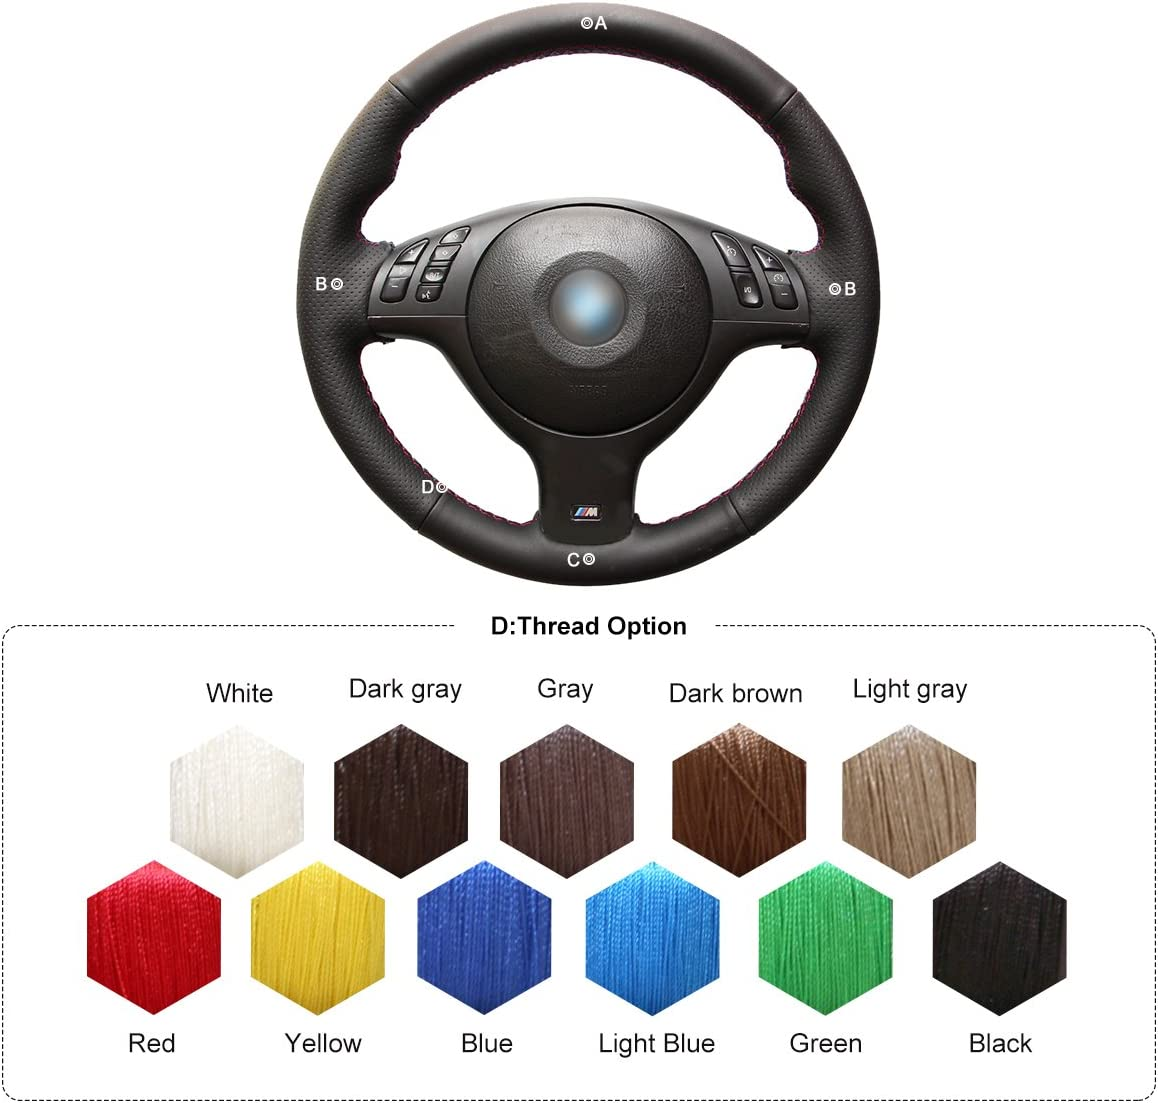 M3 2001-2006 M5 2000-2003 MEWANT Customized DIY Durable Black Artificial Leather Car Steering Wheel Covers Wrap for BMW 3 Series E46 E46//5 2004-2005//5 Series E39 2002-2003